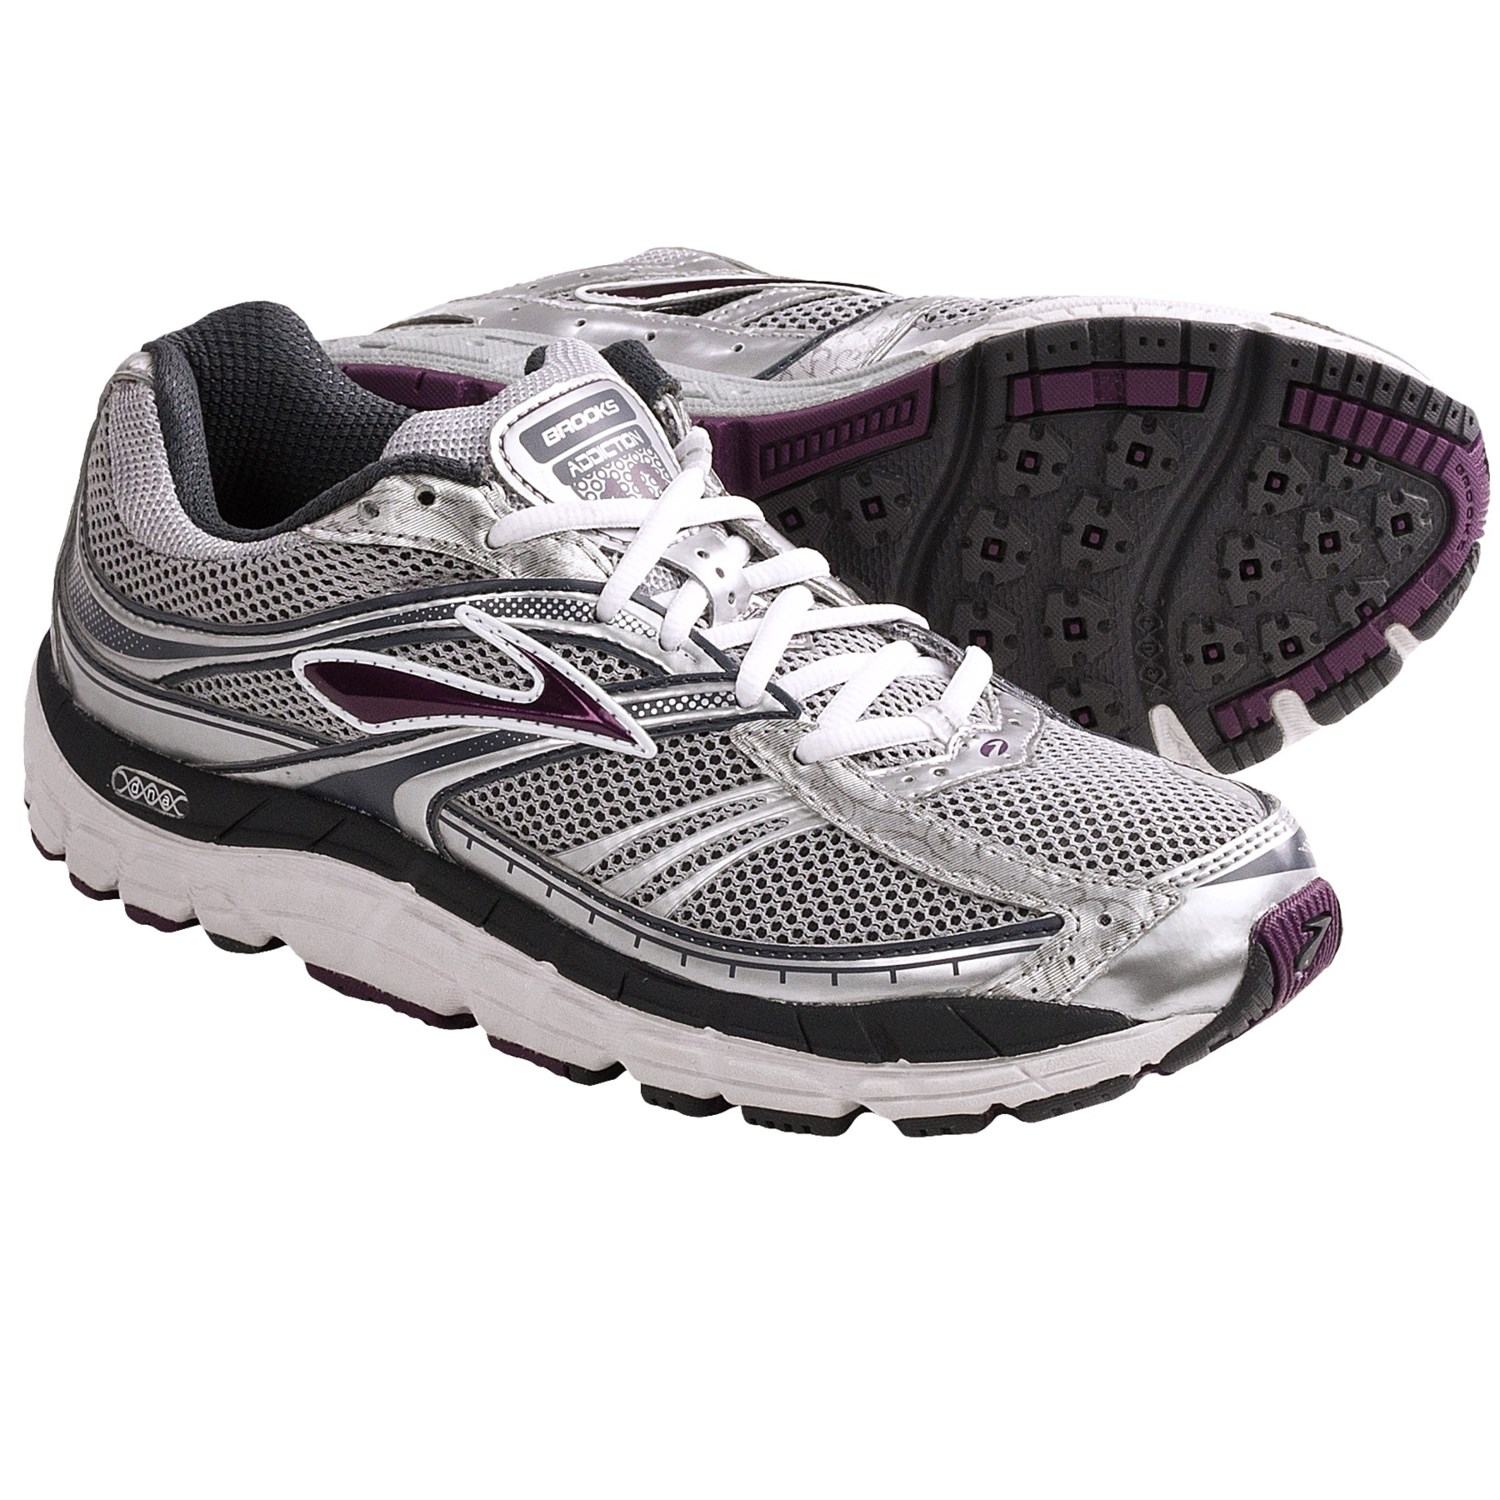 Brooks Shoes Online Coupon